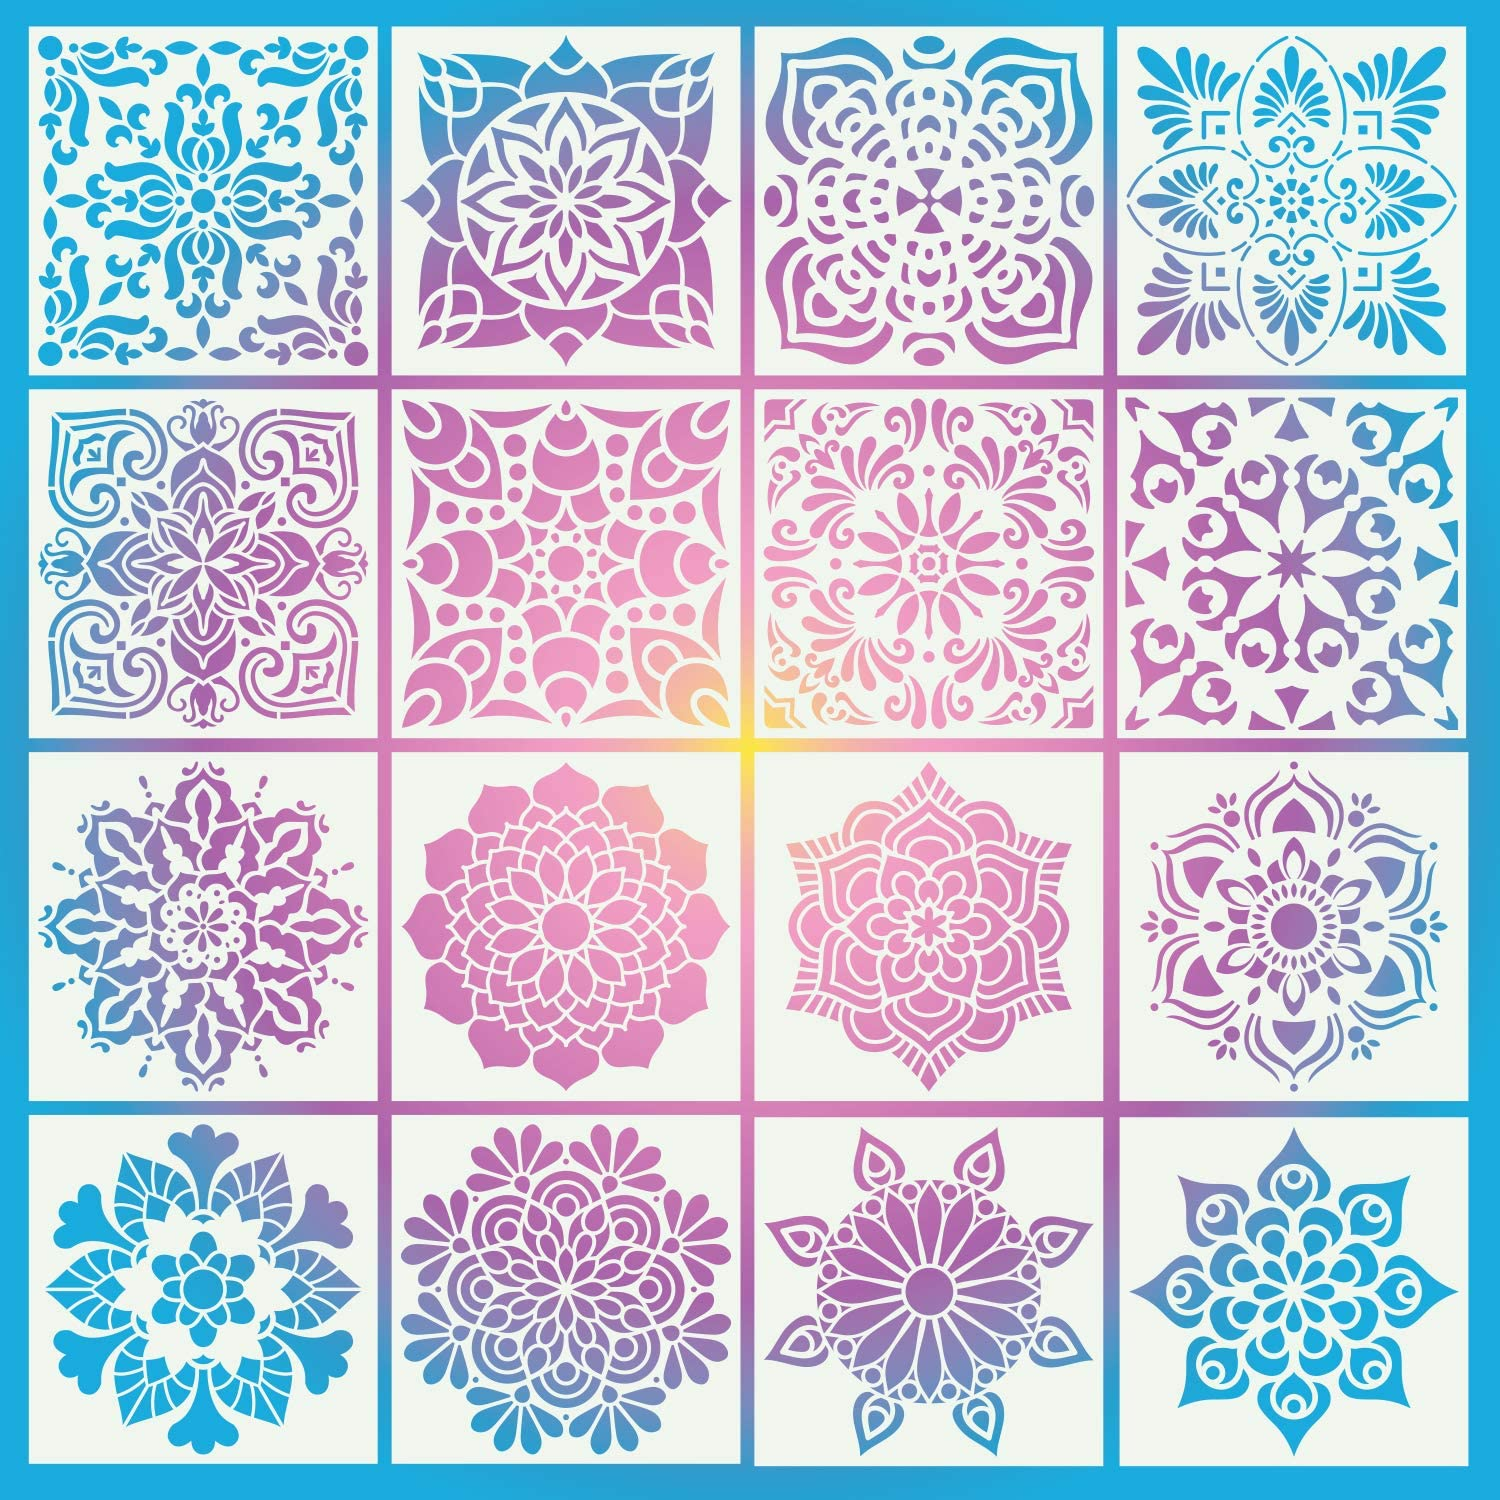 16 Pack (6x6 Inch-3) Painting Drawing Stencils Mandala Template for DIY Rock Floor Wall Tile Fabric Furniture Stencils for Crafts Projects Home Decoration Painting Art Projects Reusable